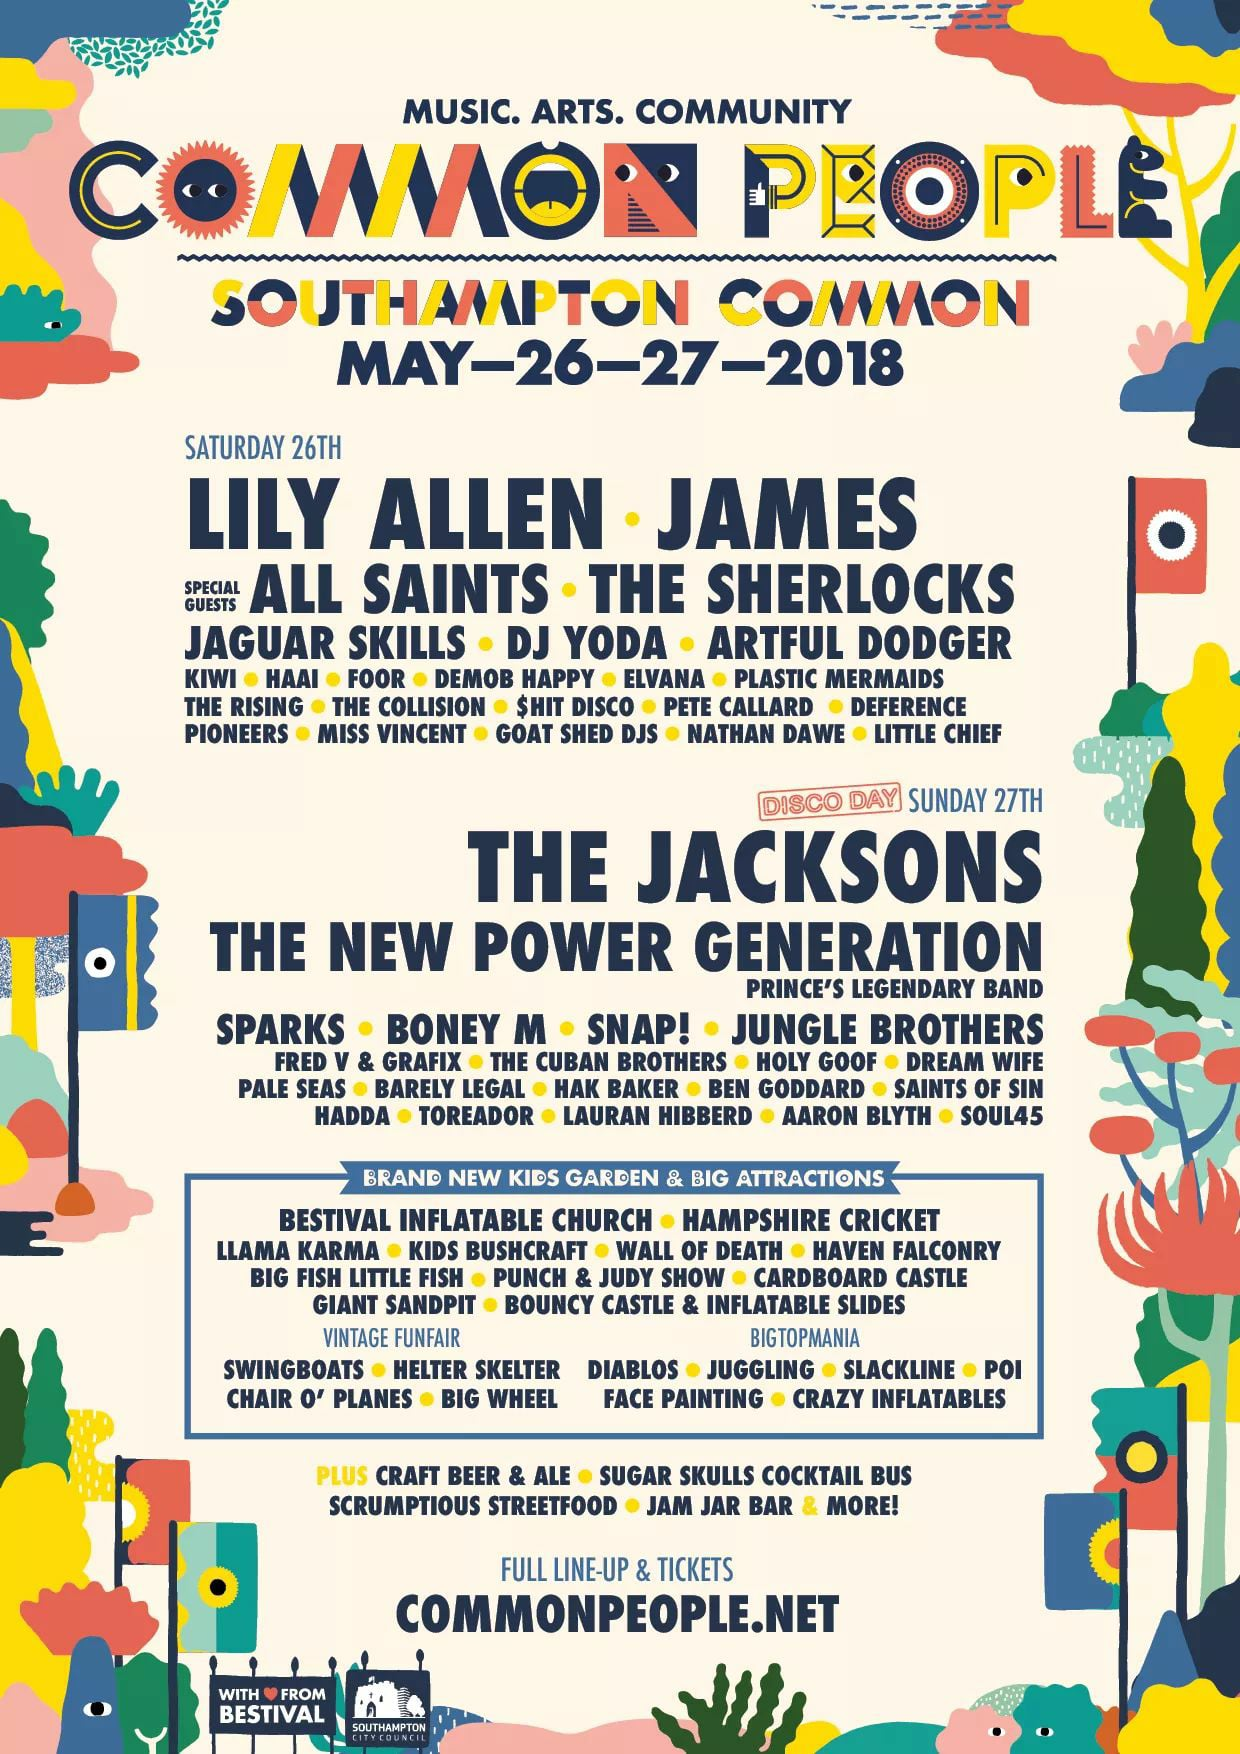 Common People 2018 Lineup Announced